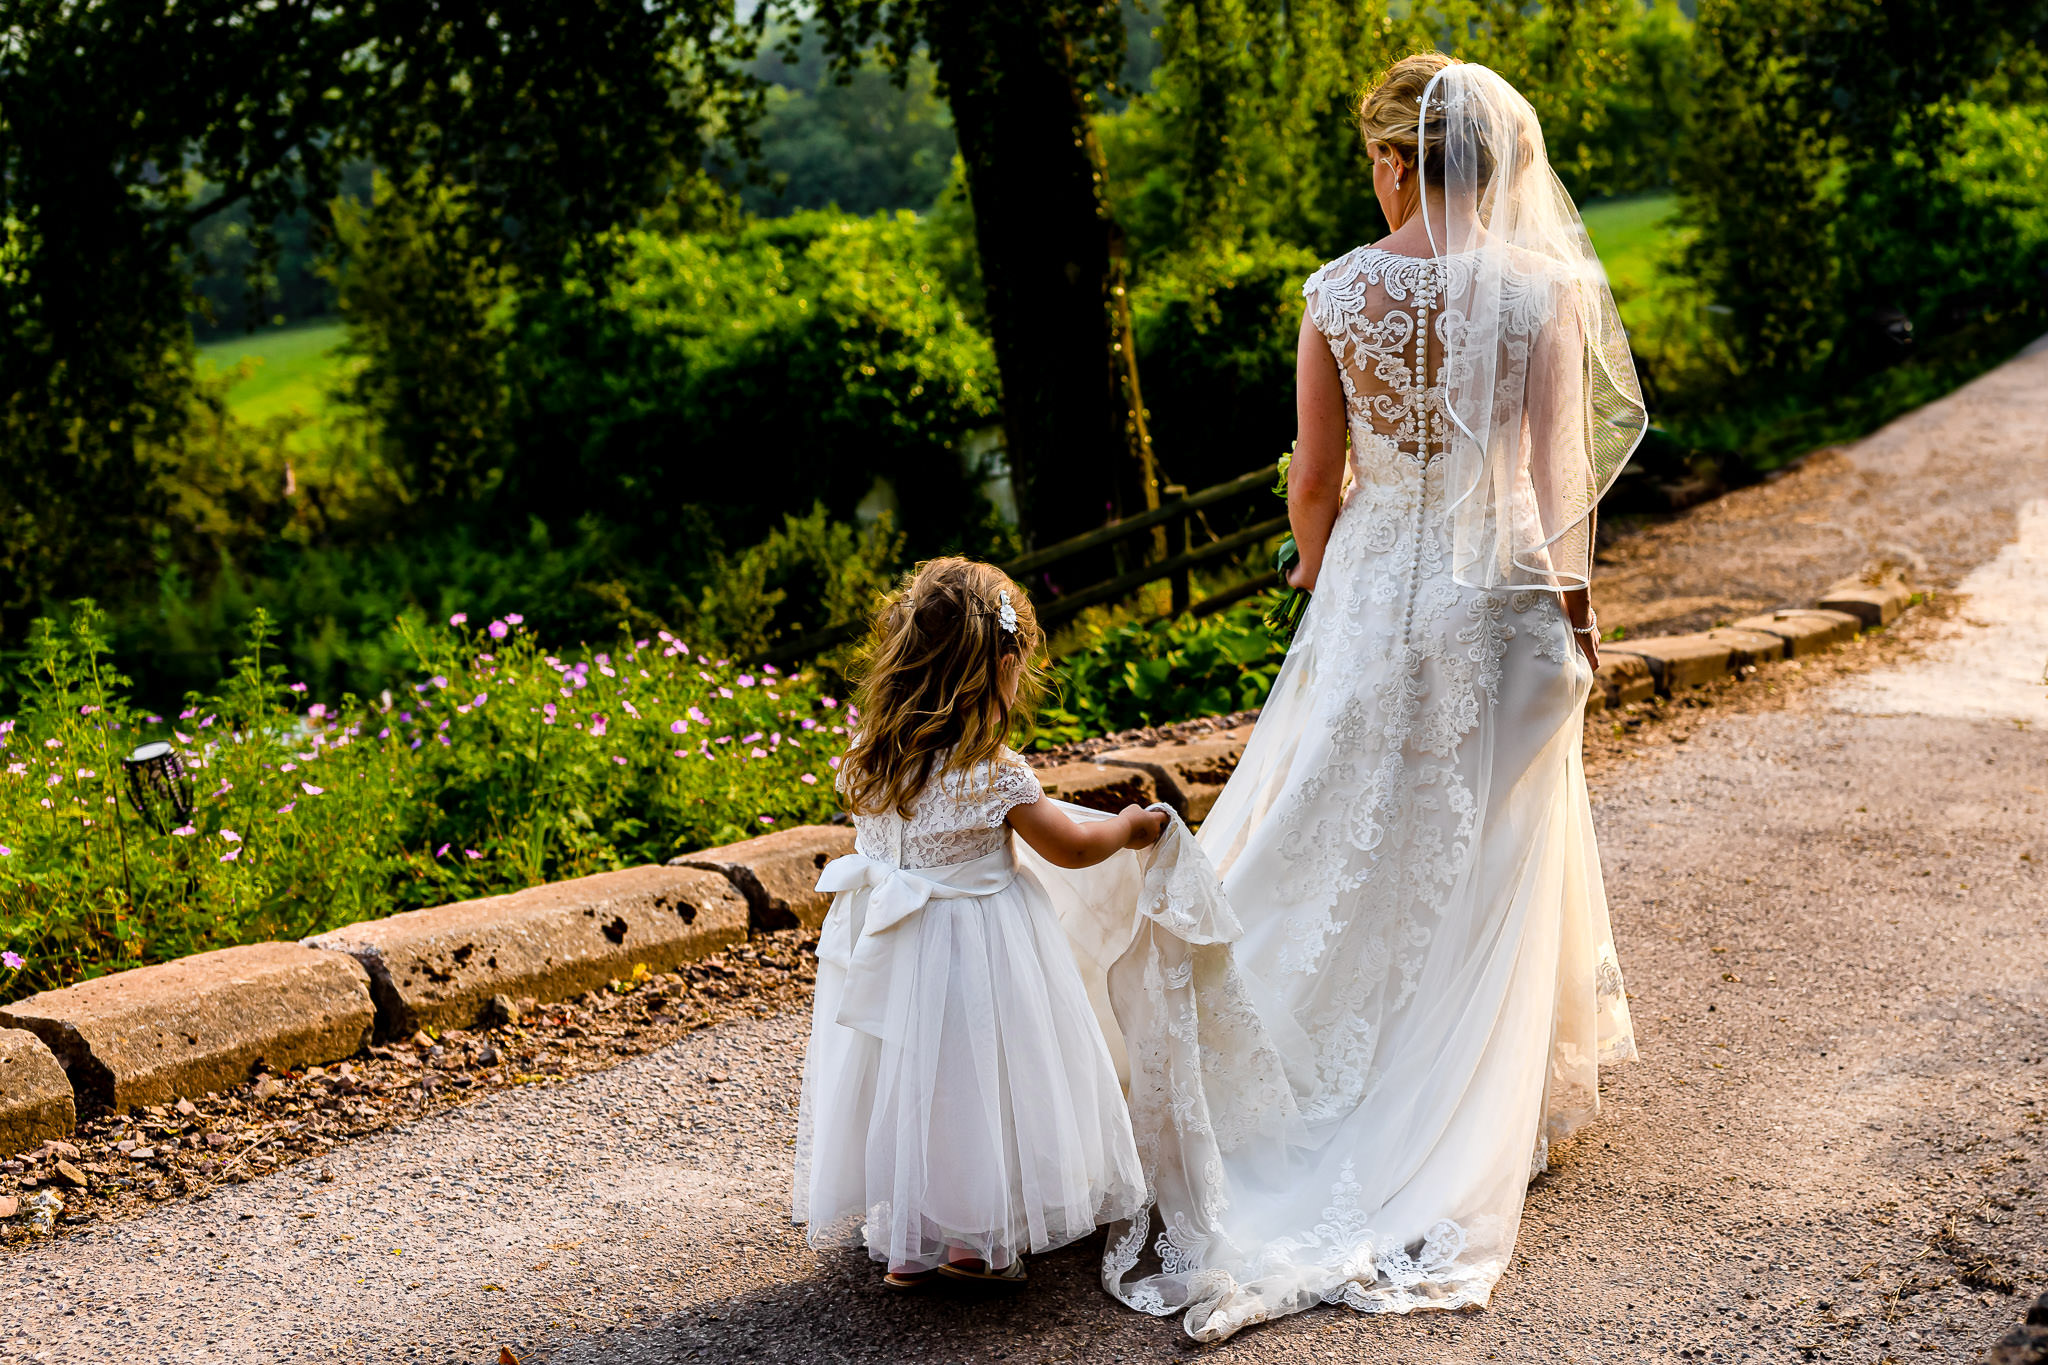 Art by Design - Caer Llan Wedding Photography - Bride and Flowergirl